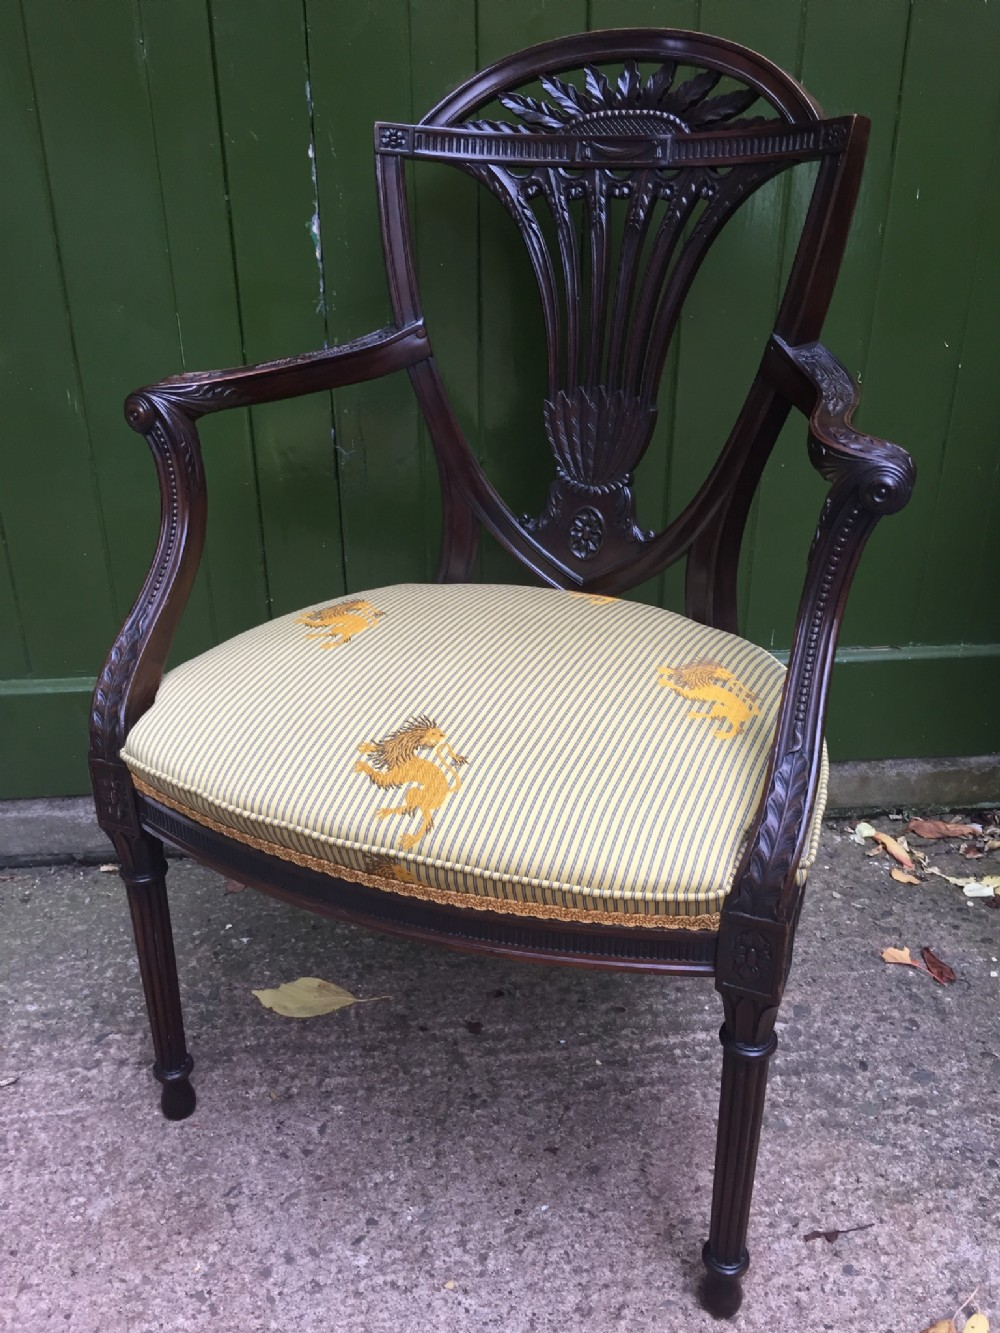 superb quality late c19th carved mahogany framed armchair in the adam revival style